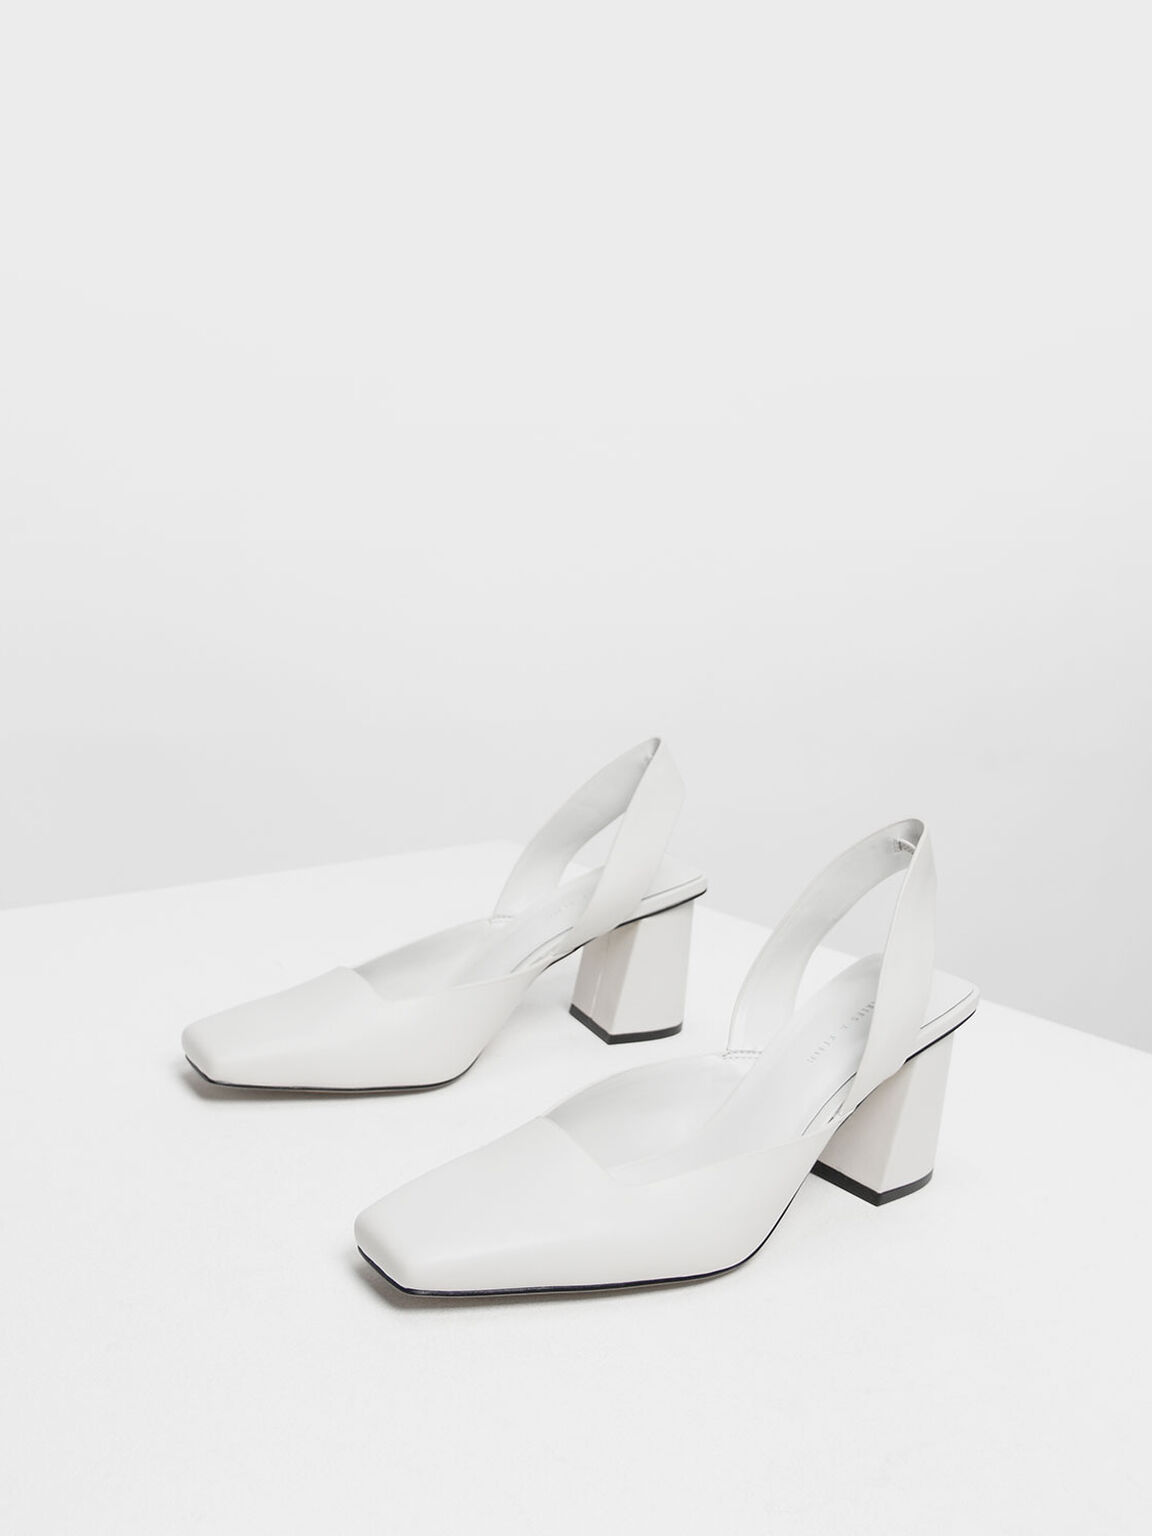 Square Toe Block Heels, White, hi-res